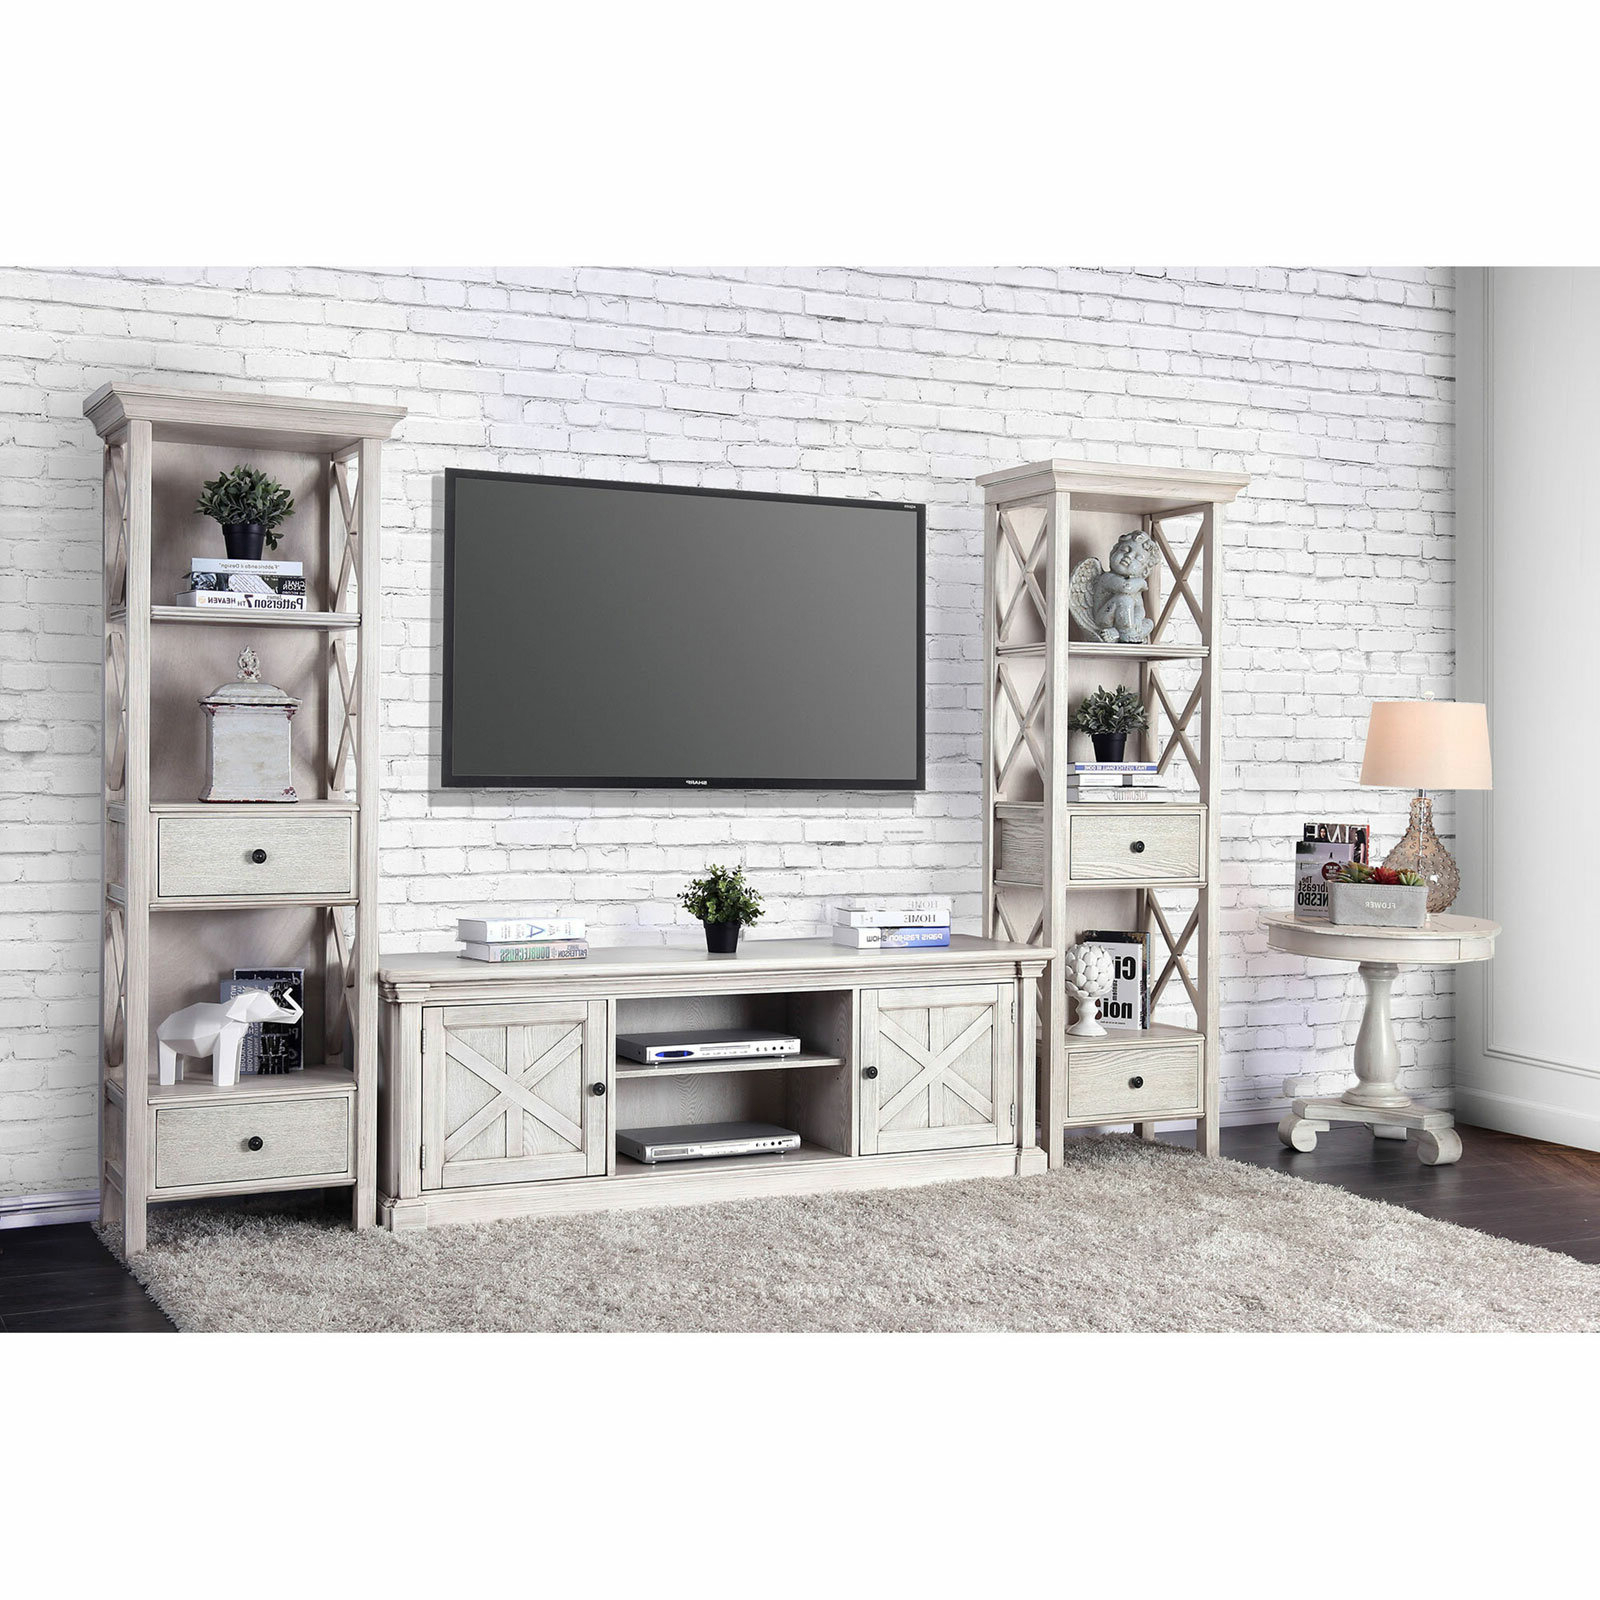 "Leandra Tv Stand For Tvs Up To 70"" Regarding Parmelee Tv Stands For Tvs Up To 65"" (View 13 of 20)"